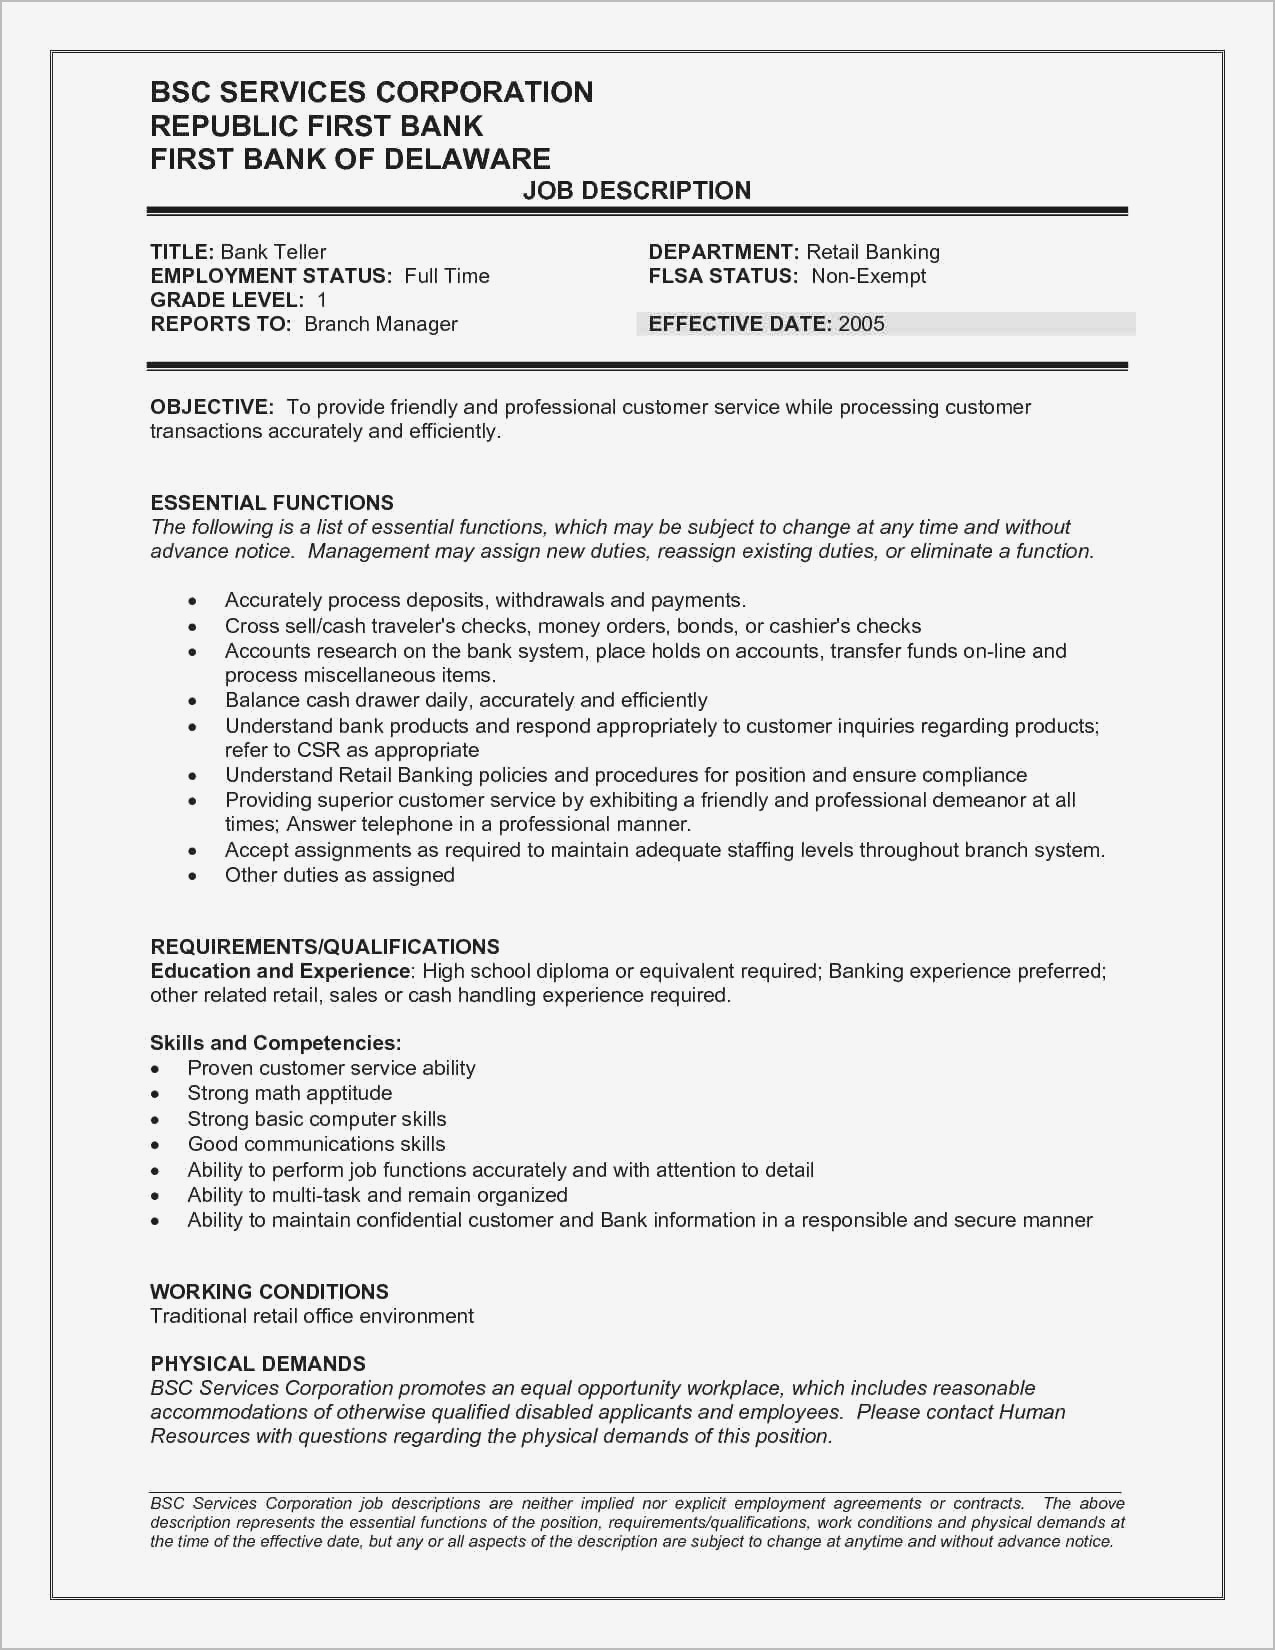 Core Competencies Resume Examples - Basic Resume Examples for Retail Jobs Resume Resume Examples